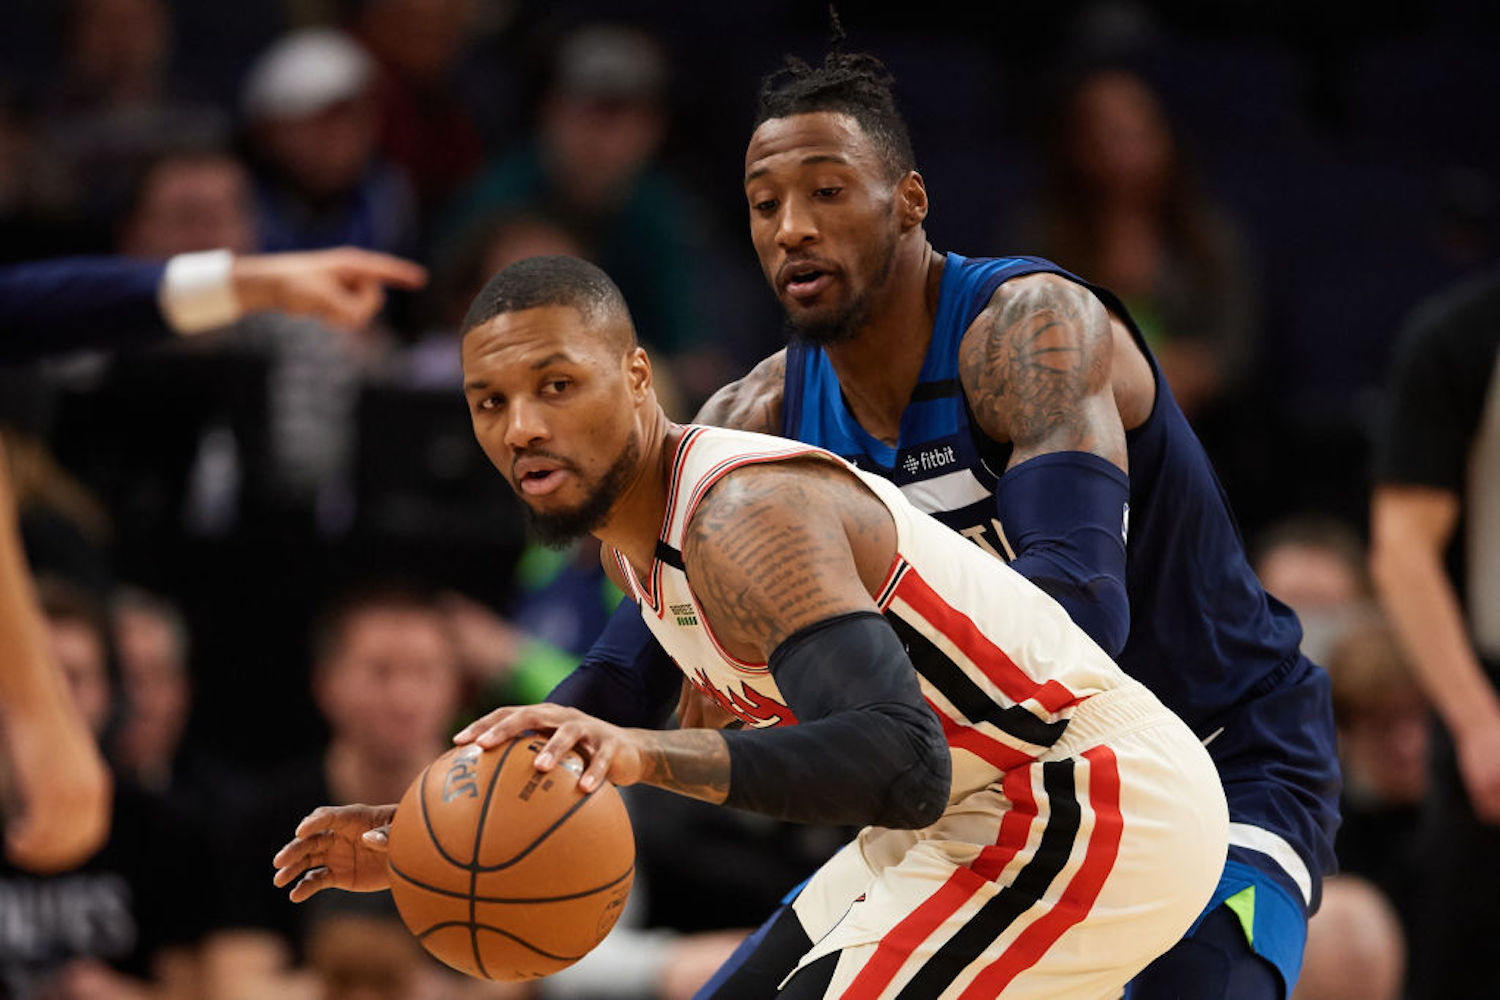 The Trail Blazers haven't surrounded Damian Lillard with enough help recently, but Robert Covington will make them a title contender.